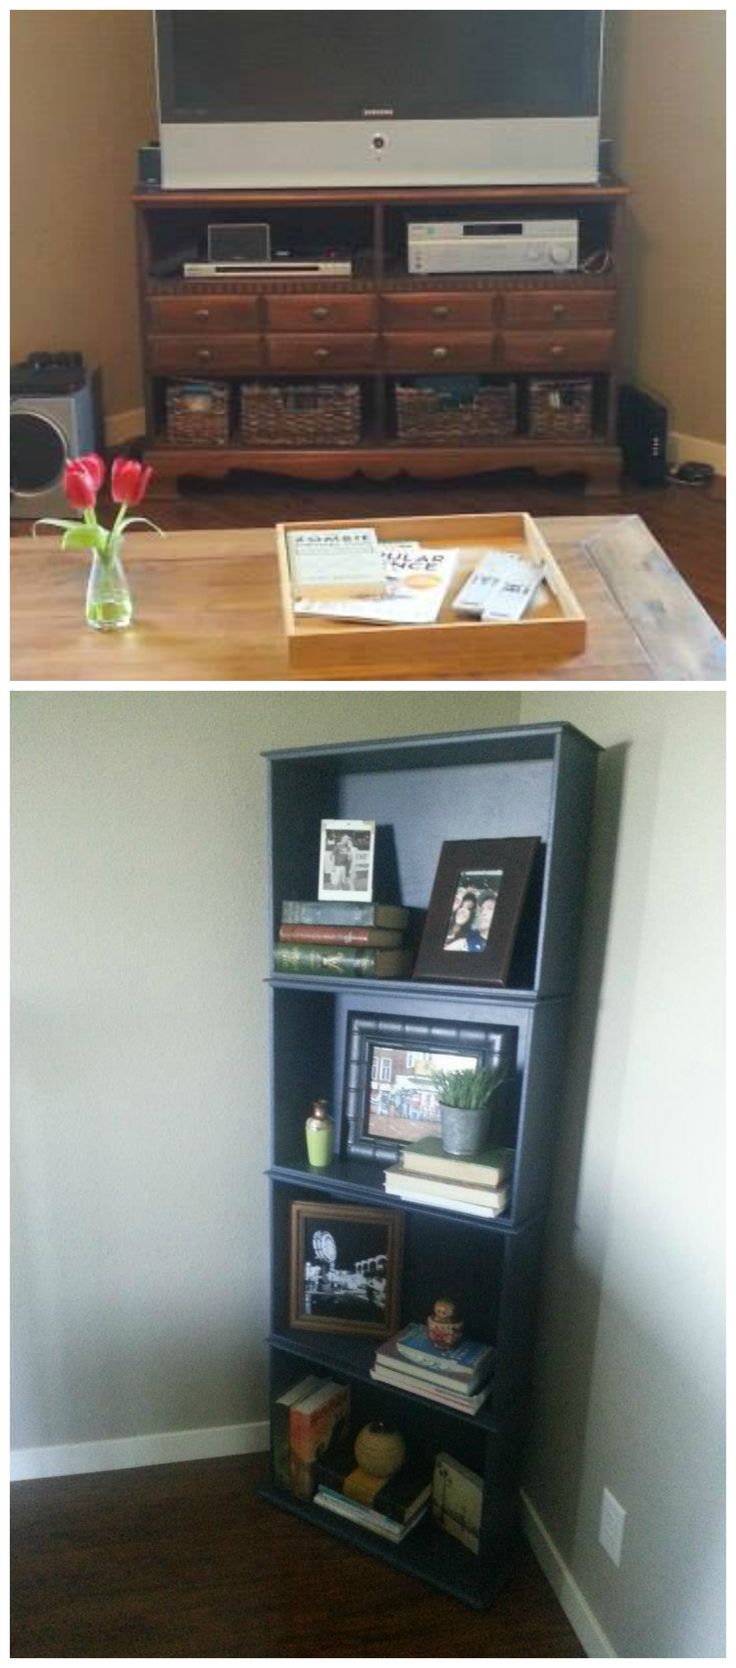 Wife Hack 8: 2 Pieces of Furniture in 1! Take the drawers out of a dresser and nail them together to create a bookshelf, replace the drawers in the old dresser with baskets. Voila! Wife hacks. seehowthelilies blog.